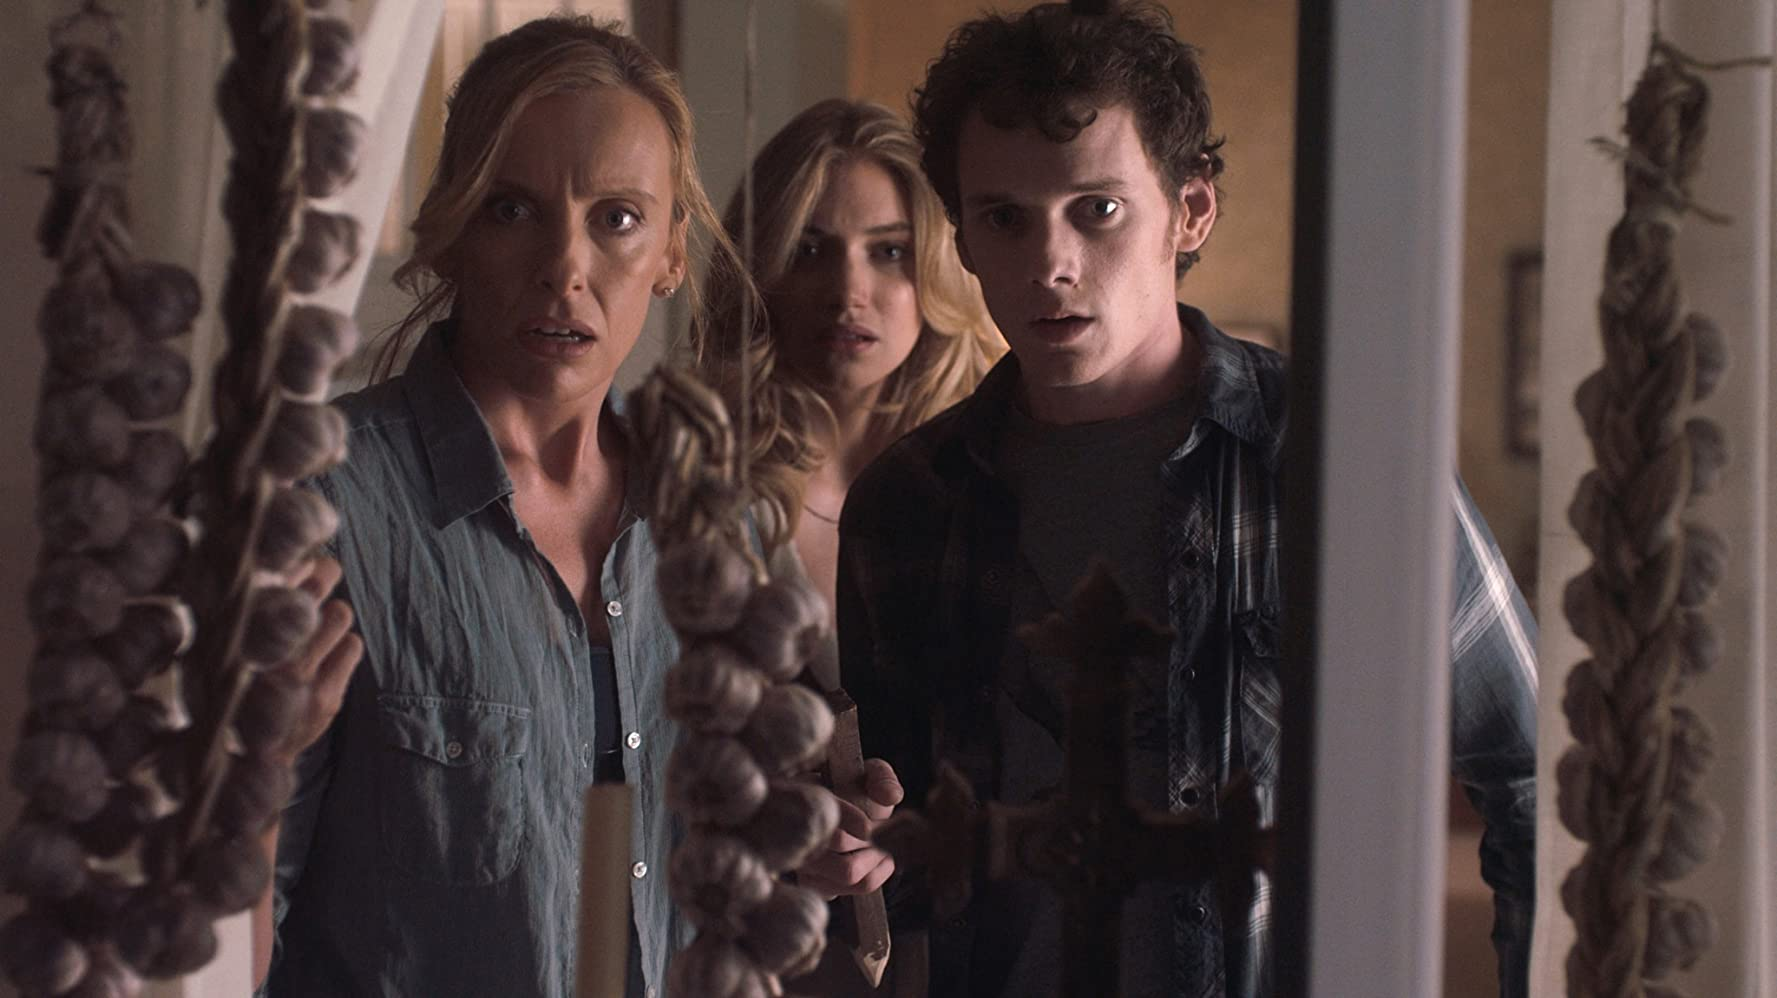 Toni Collette, Anton Yelchin, and Imogen Poots in Fright Night (2011)